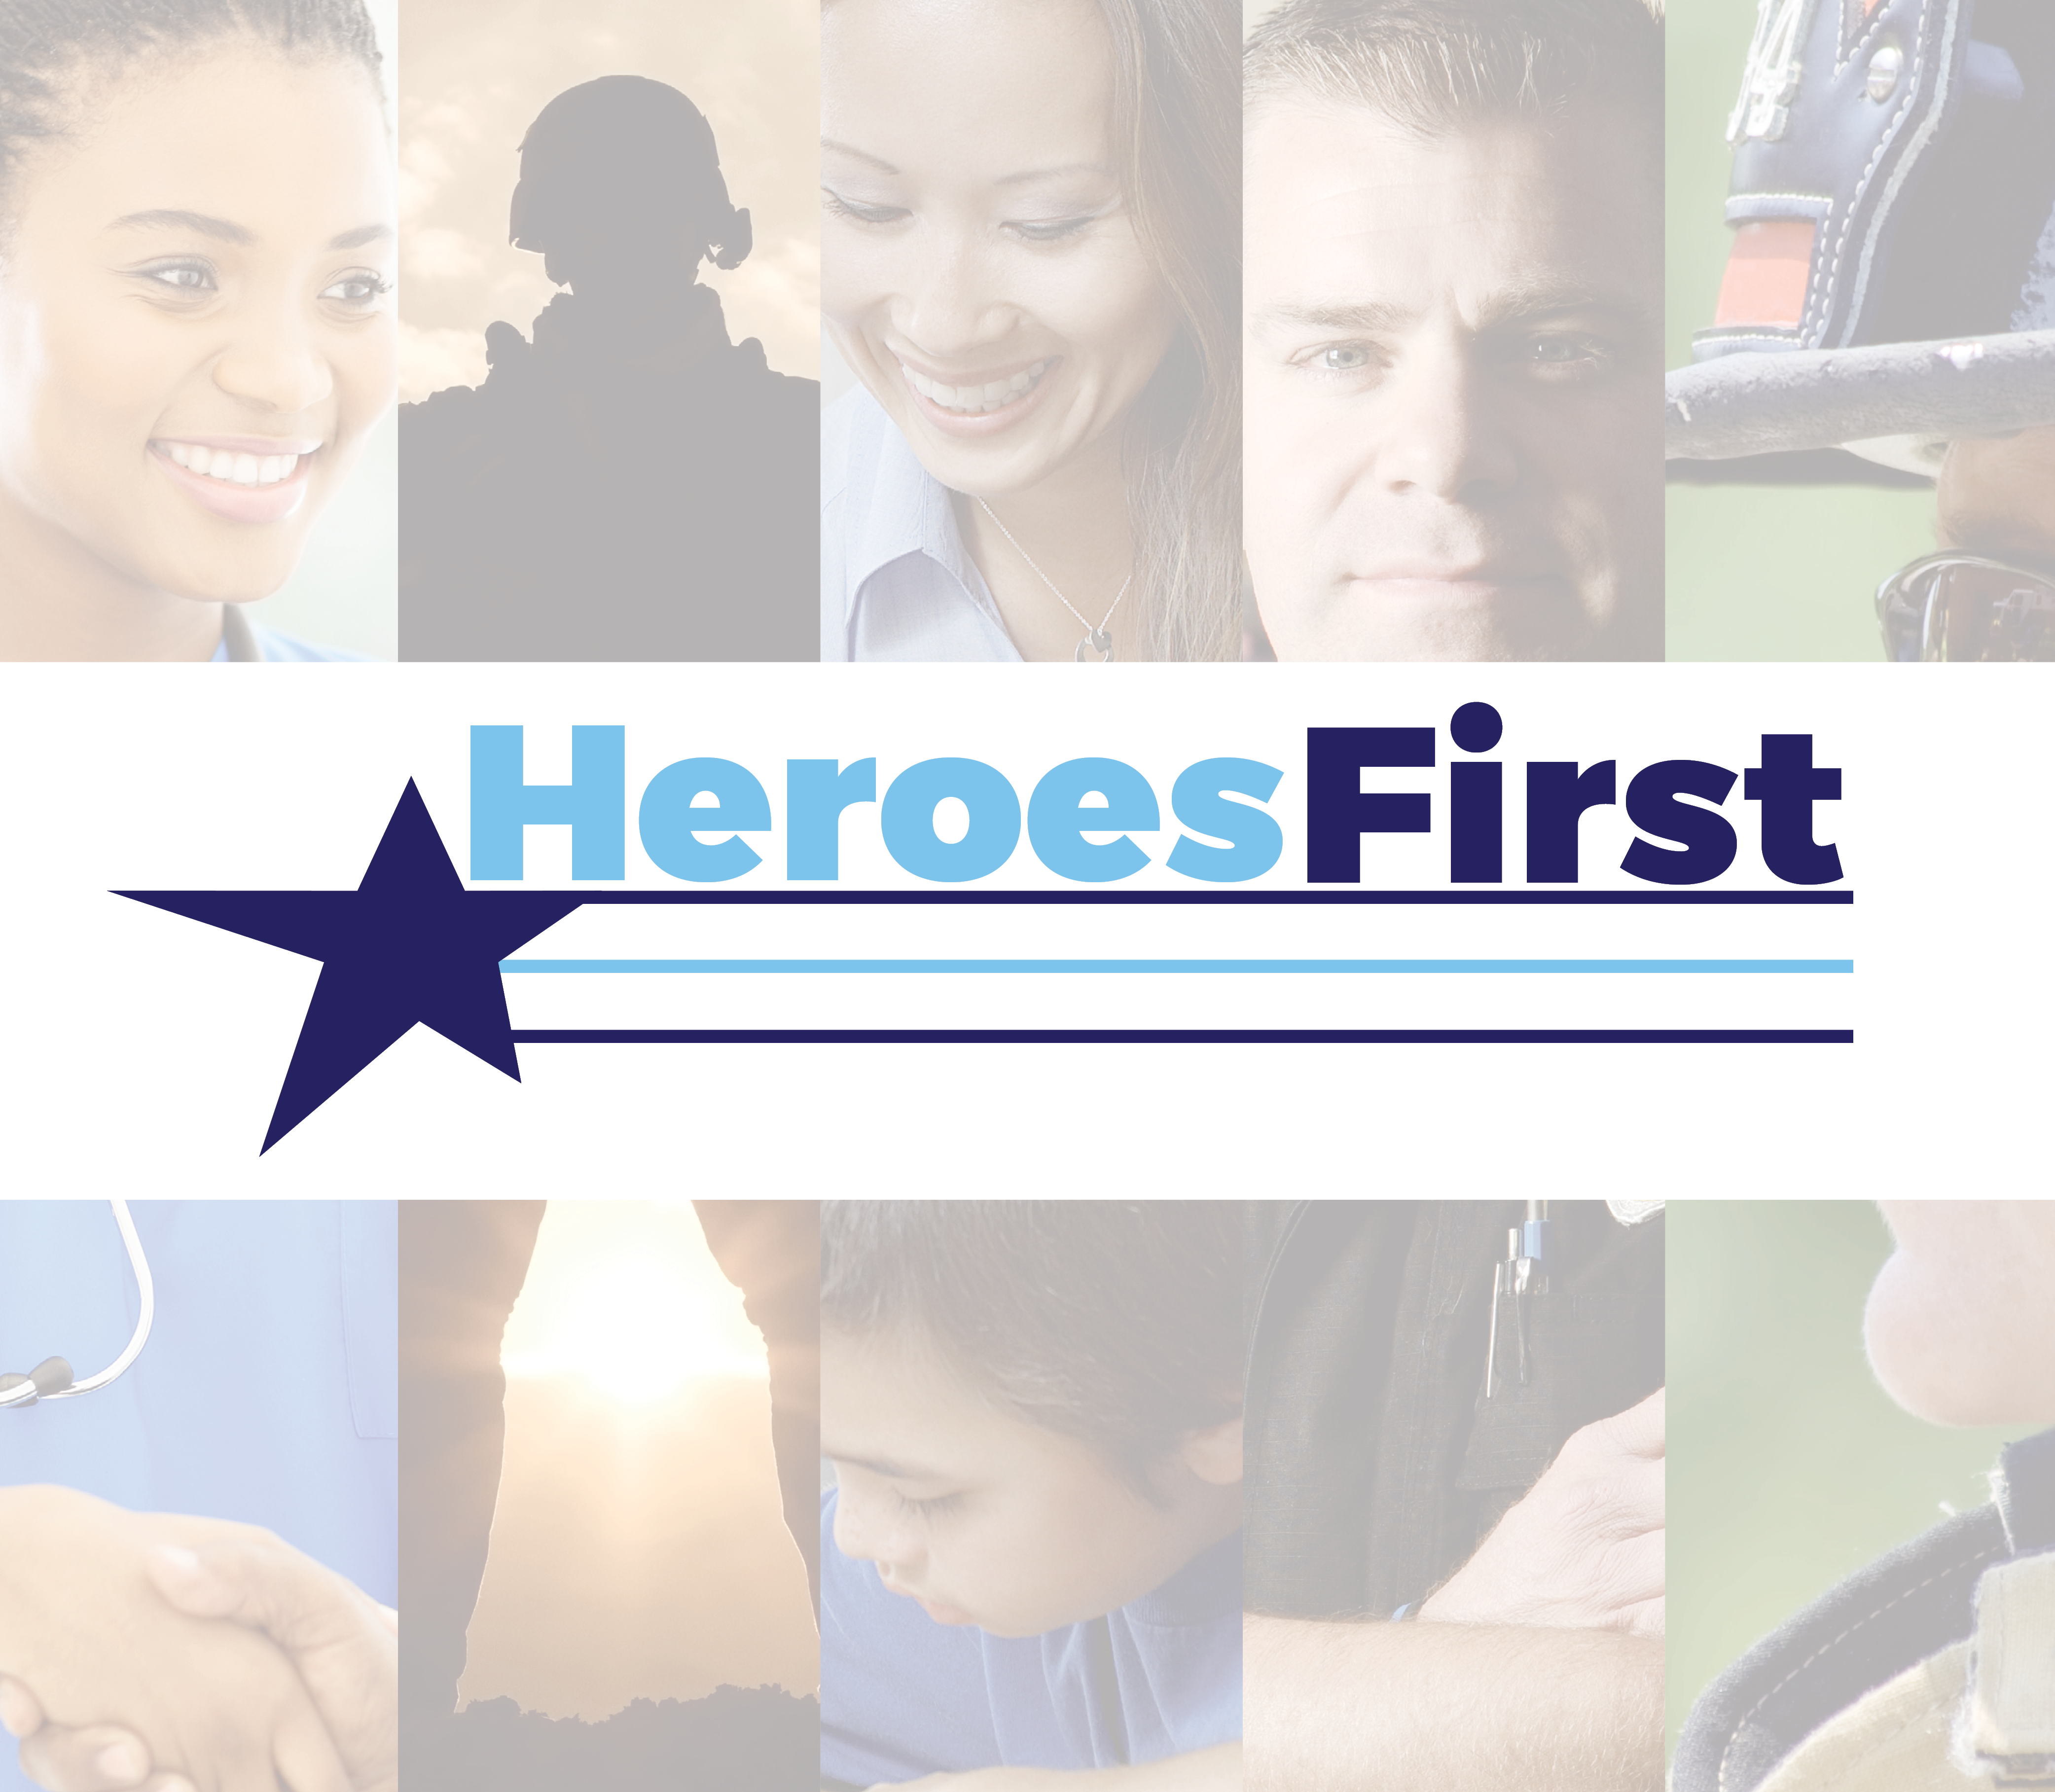 Heroes First